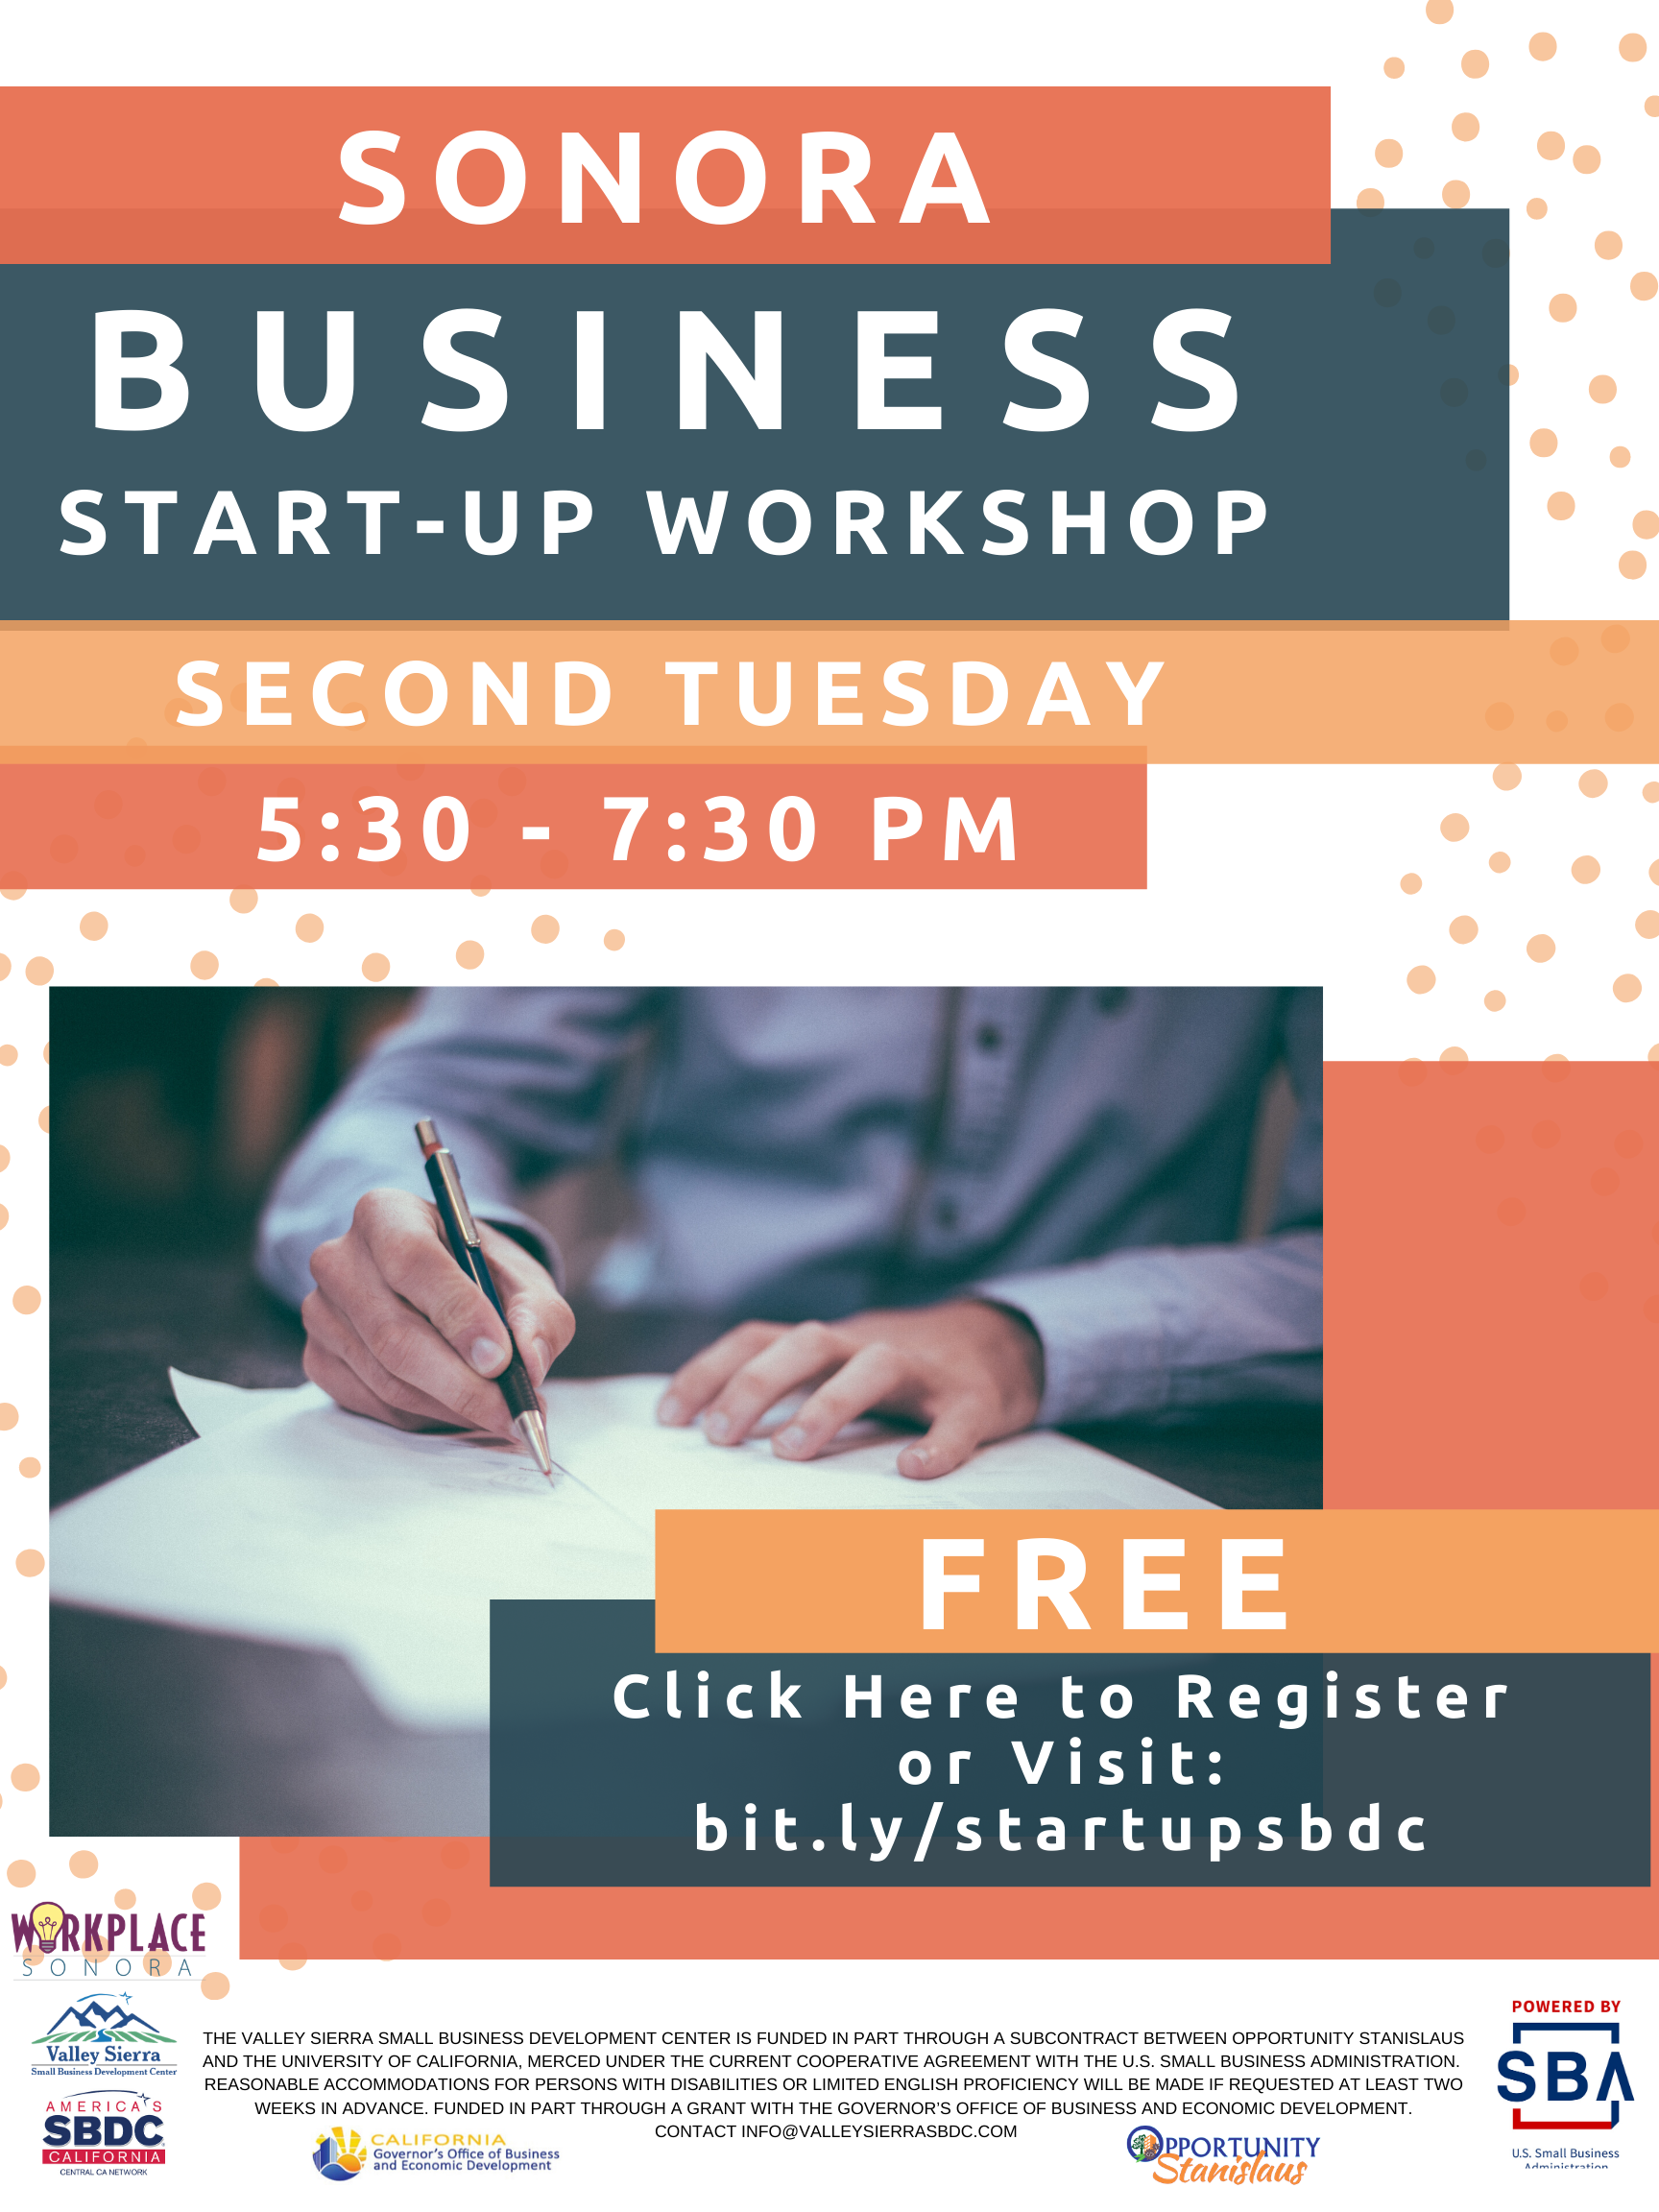 Event Flyer, Sonora: Business Start-Up Workshop, 2nd Tuesday, 5:30pm - 7:30pm. Free Registration Now Open! at Workplace Sonora, 320 W. Stockton Street, Sonora, Ca.